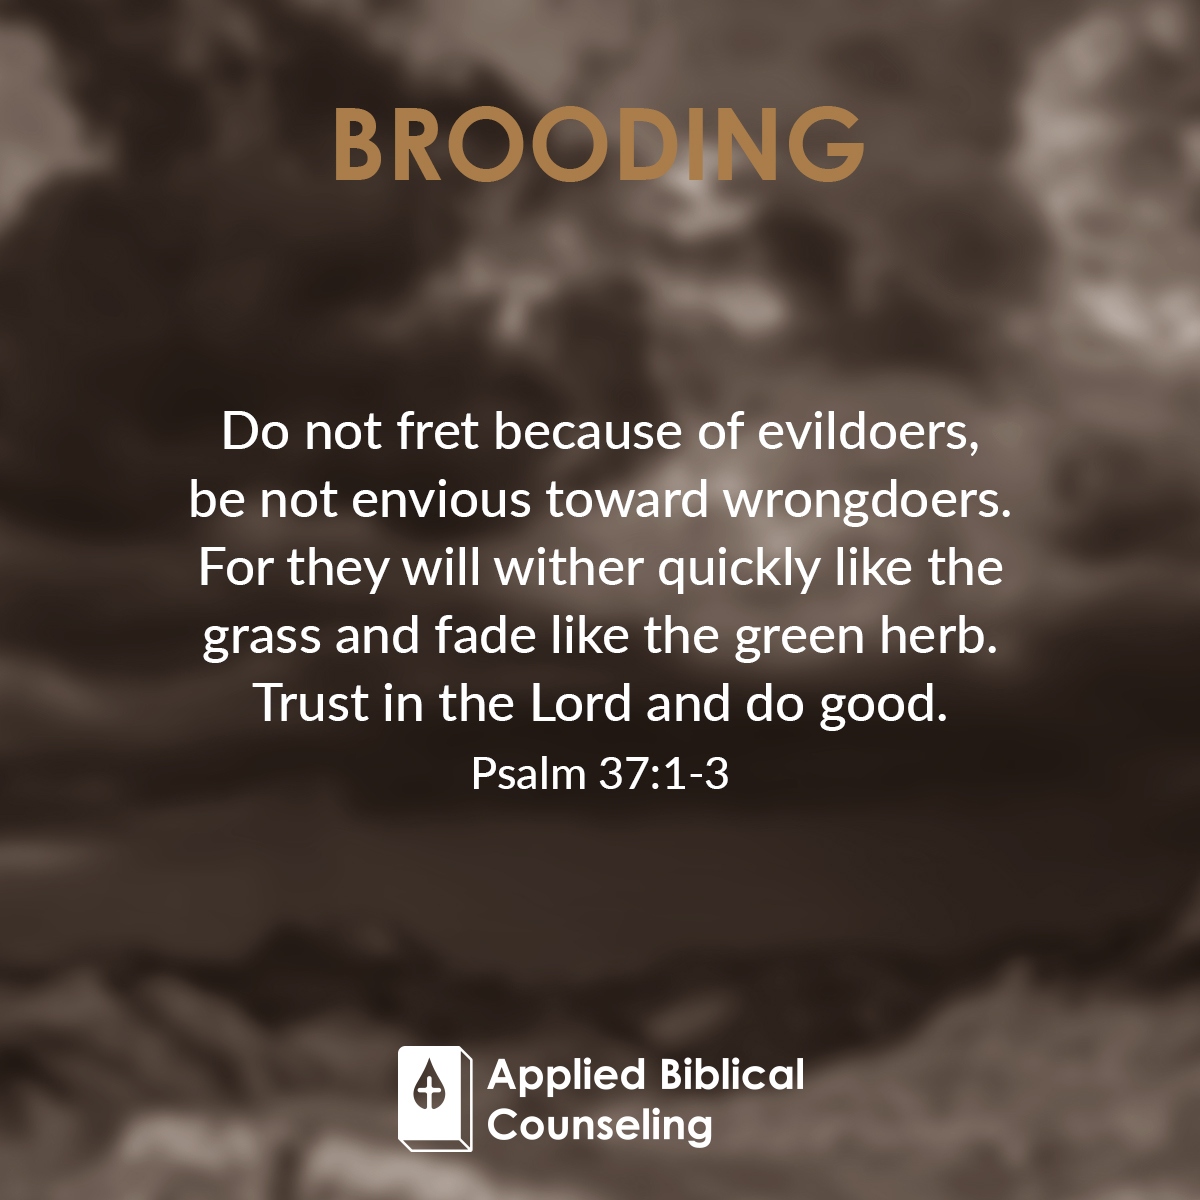 Brooding Applied Biblical Counseling 5